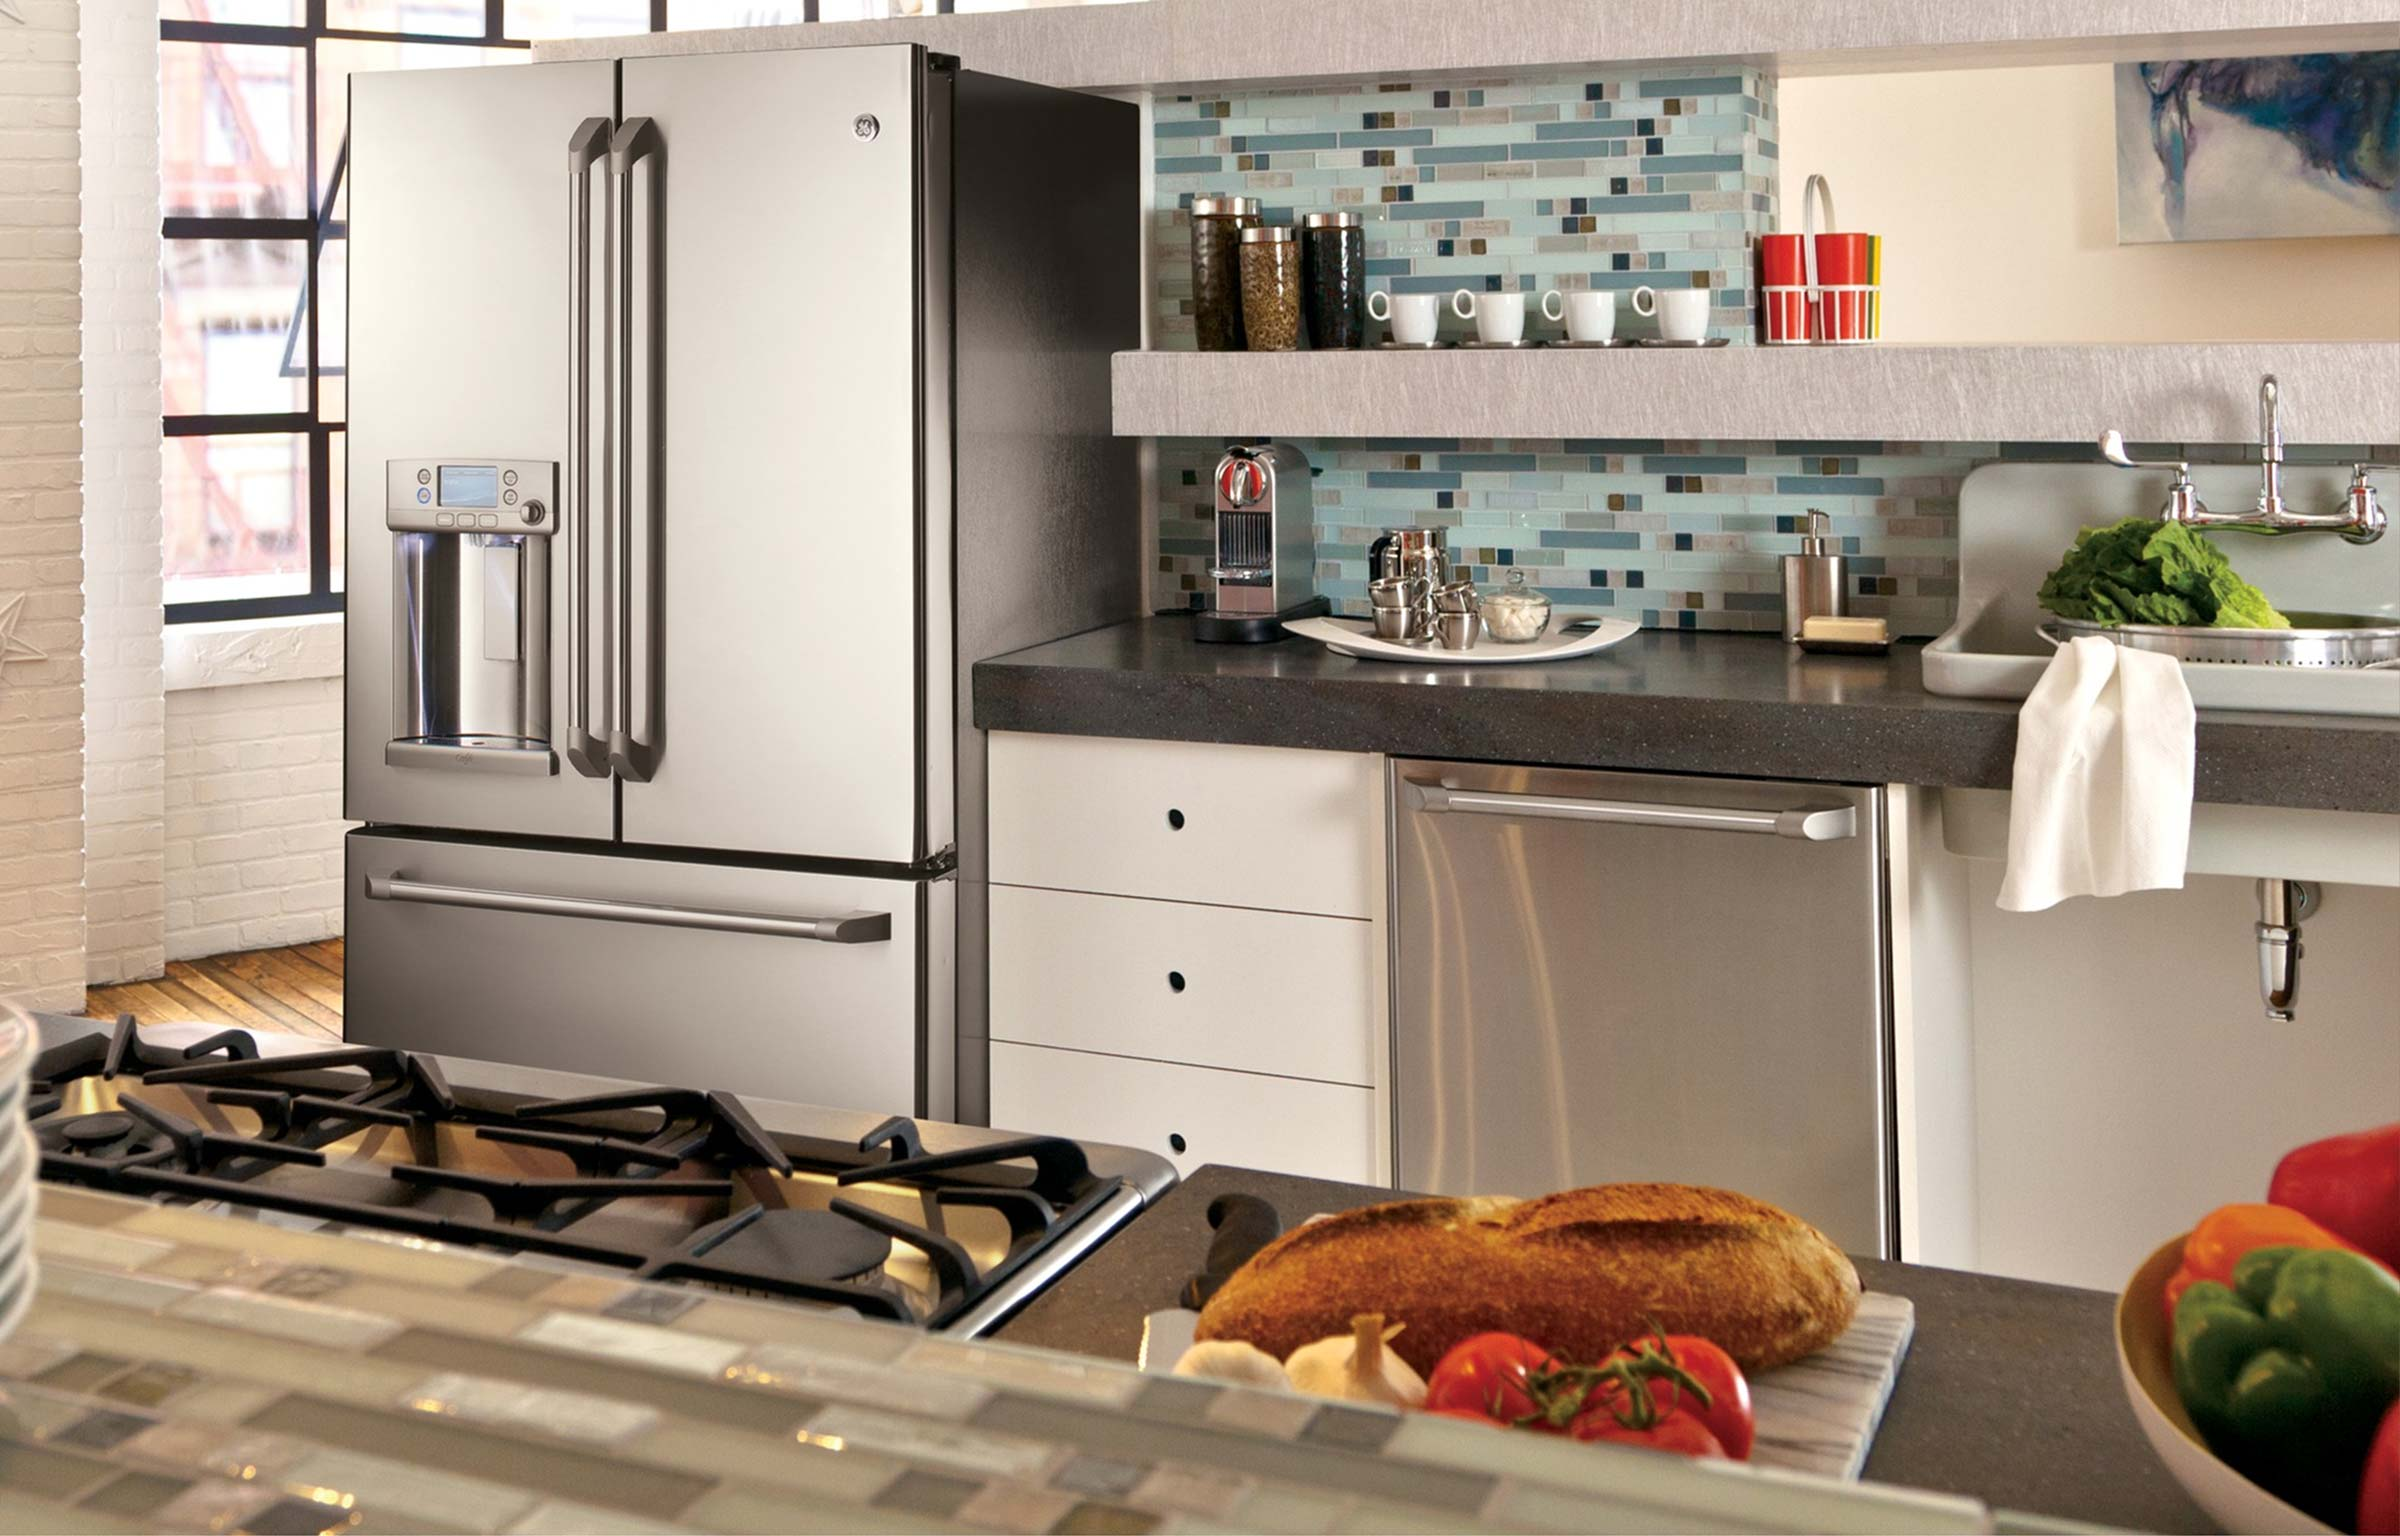 Slate Vs Stainless Steel Kitchen Design Blog